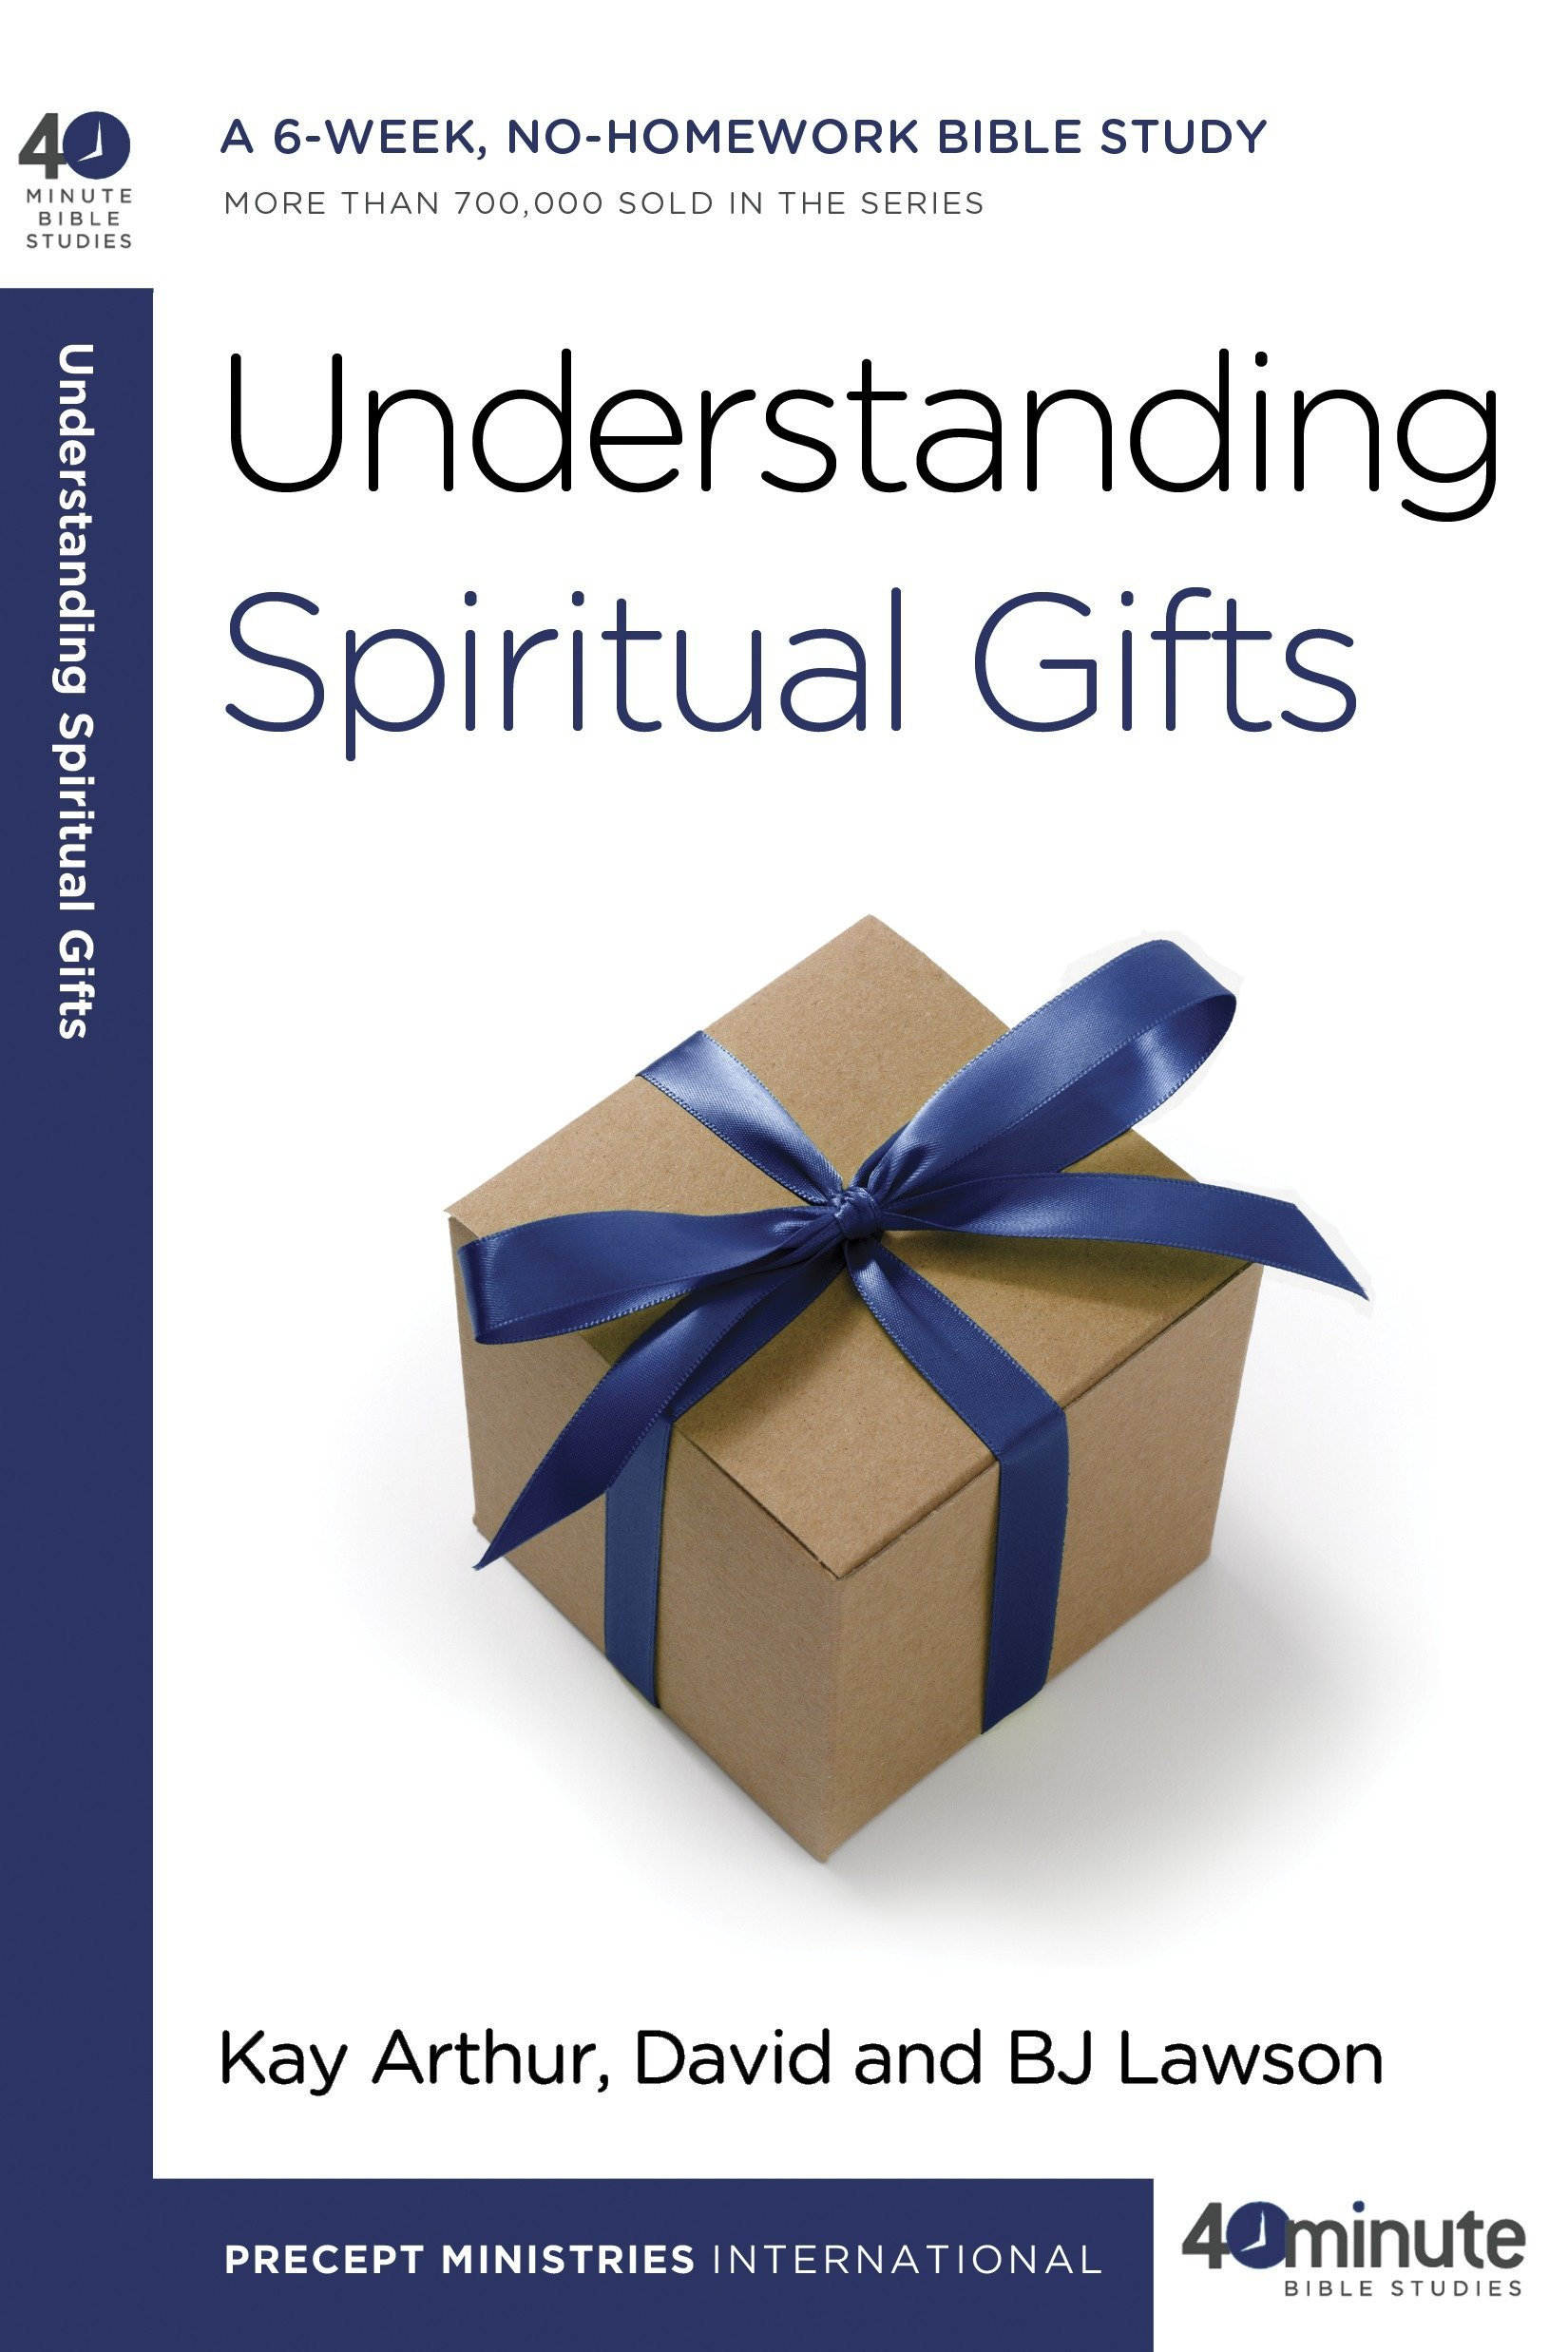 Understanding spiritual gifts 40 minute bible studies kay arthur understanding spiritual gifts 40 minute bible studies kay arthur david lawson bj lawson 9780307458704 amazon books negle Image collections